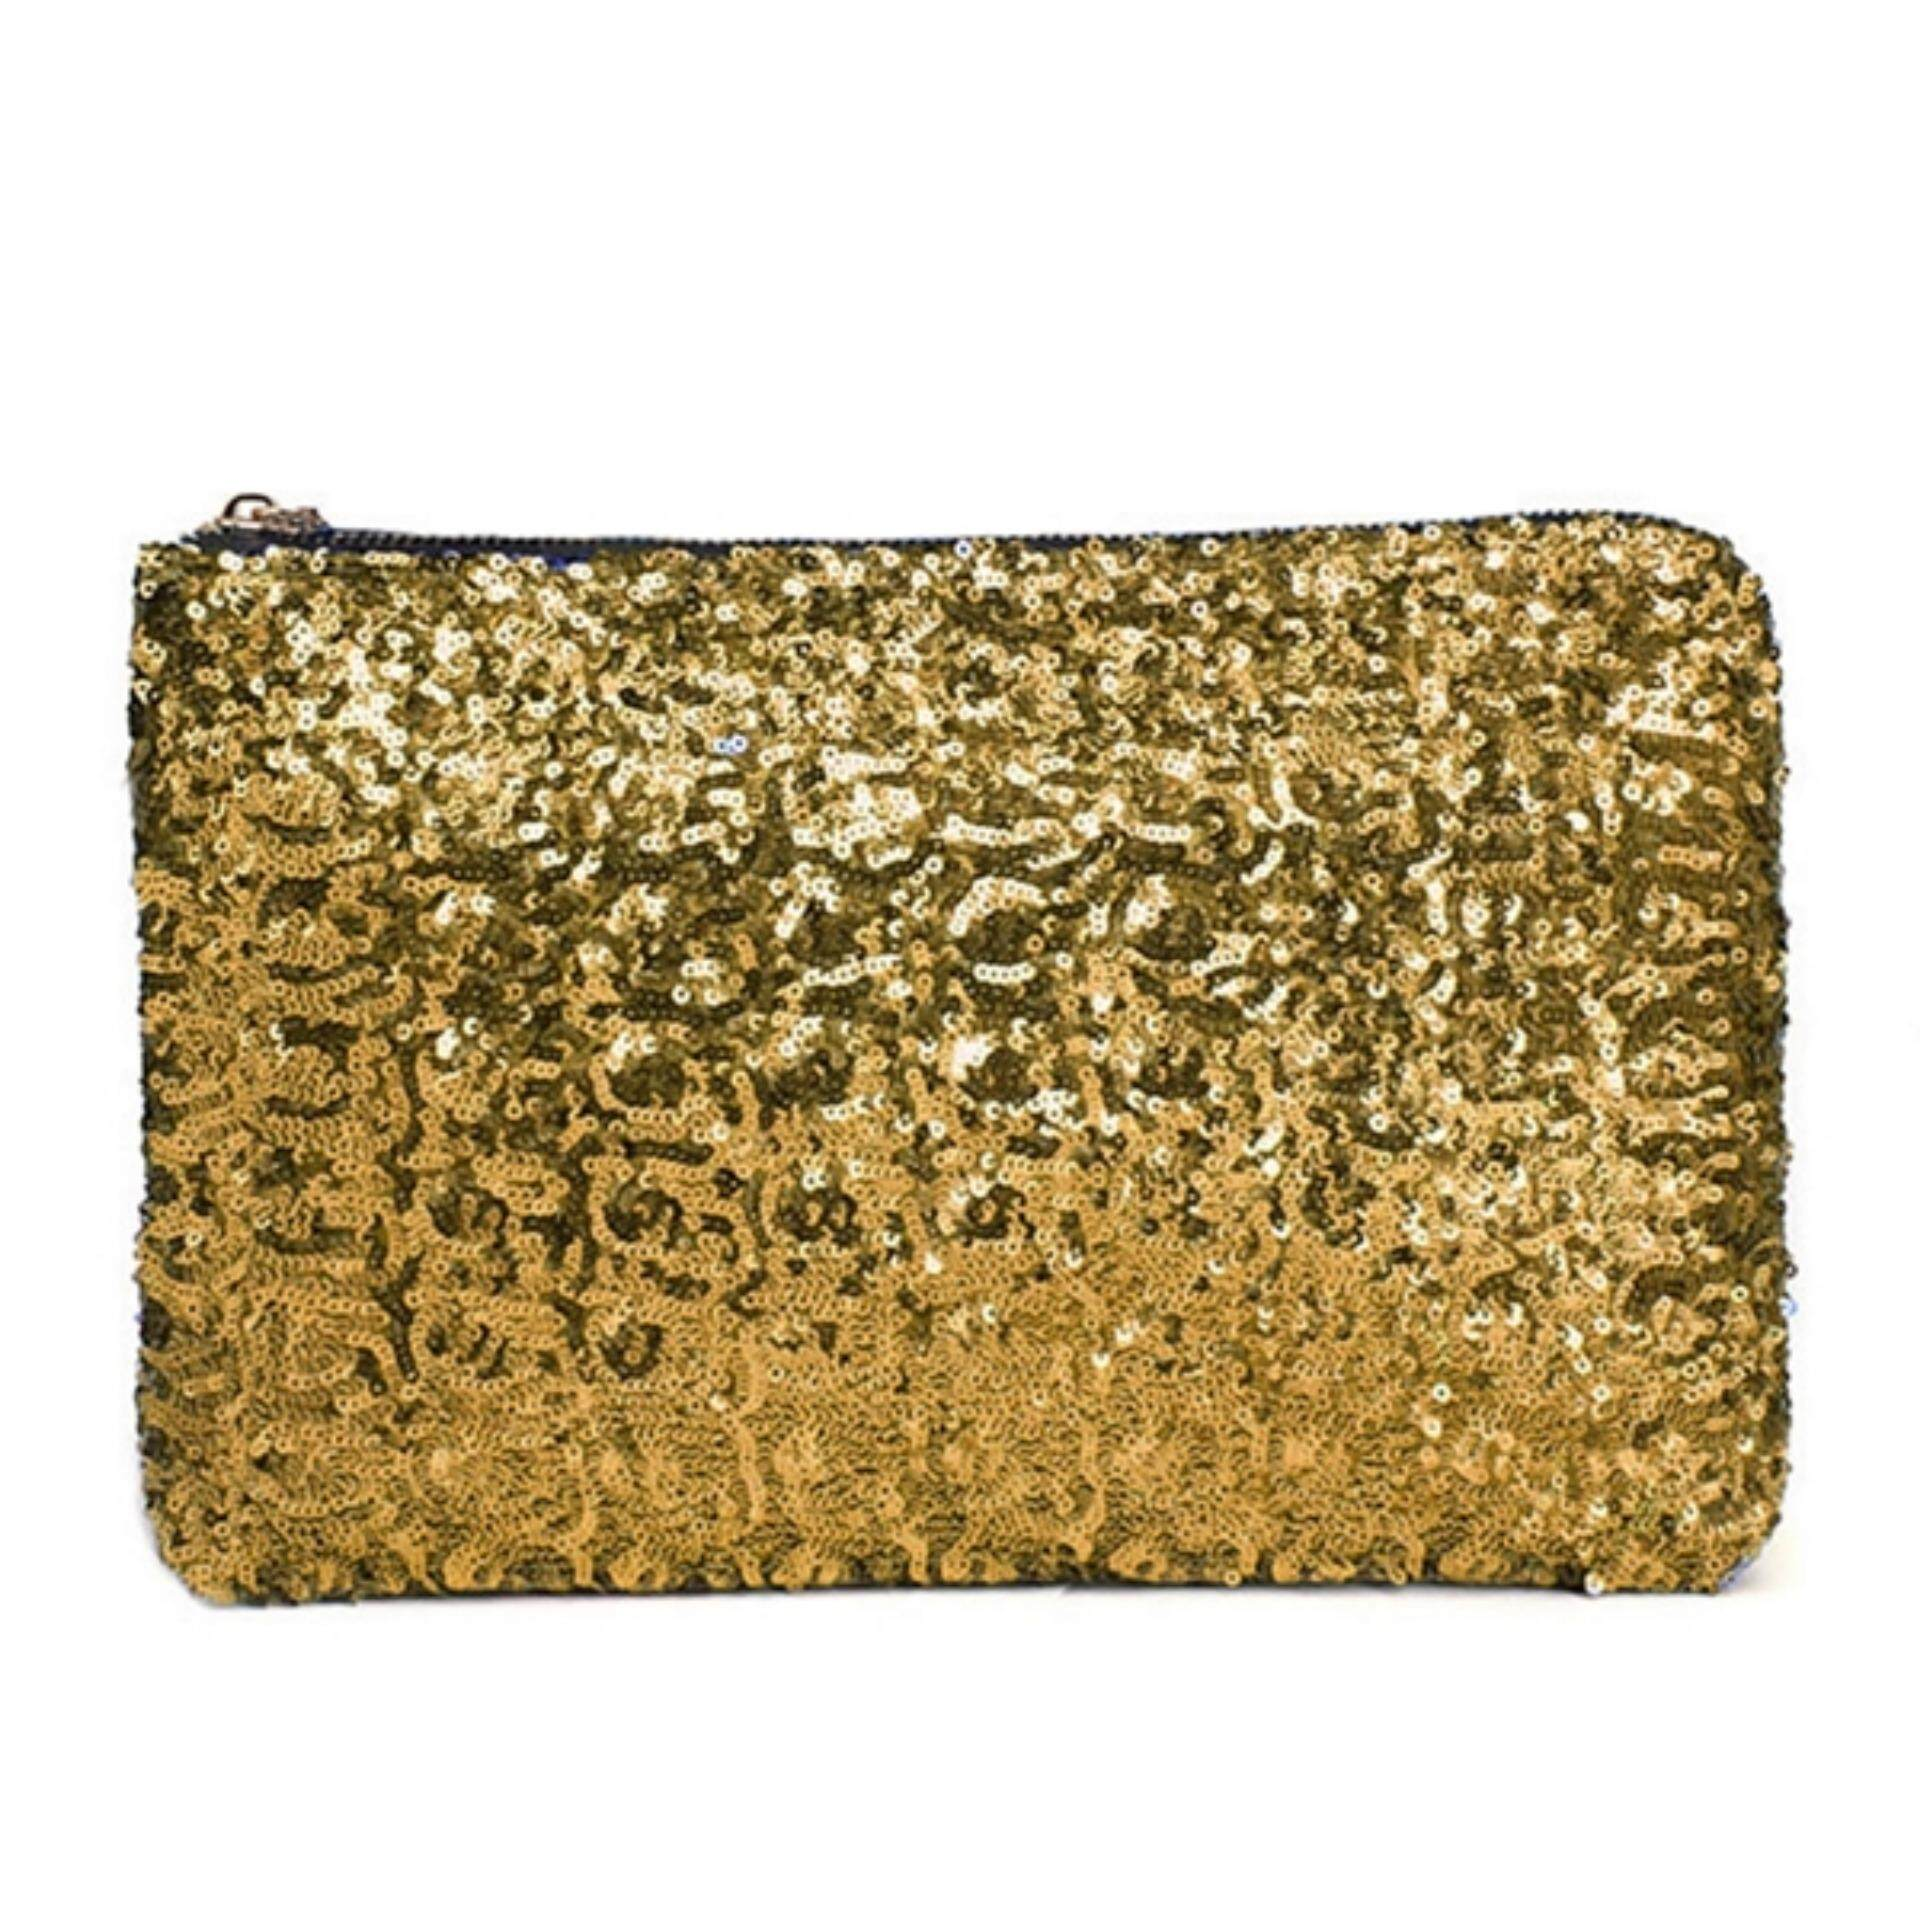 771b1d63e66dc TEEMI Sequins Metallic Glitter Clutch Evening Dinner Purse Women HandBag  Dazzling Sparkling Party Bag - Gold